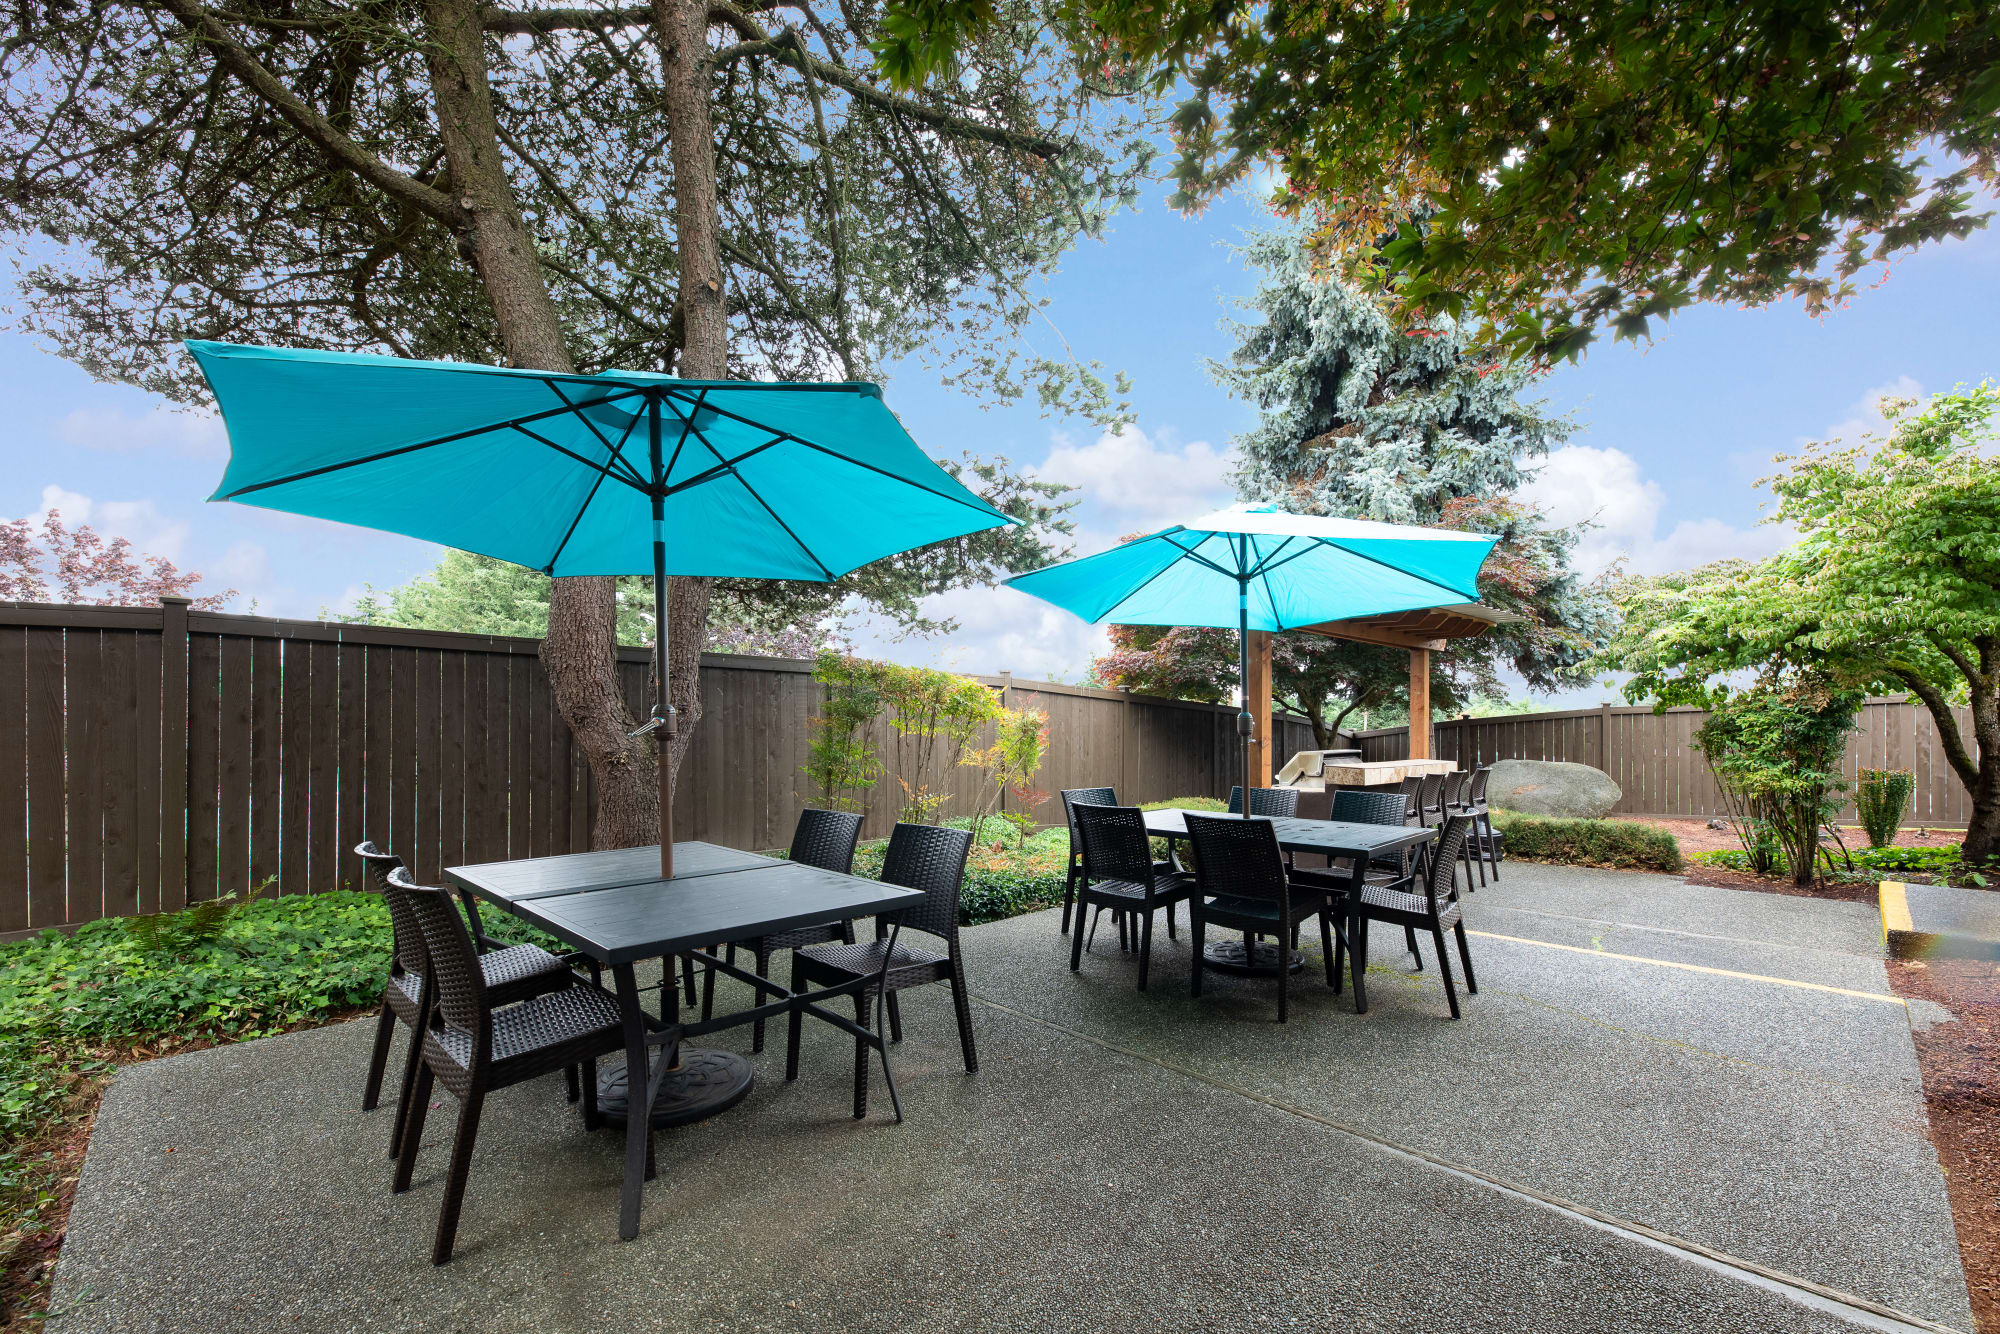 common area courtyard with chairs and umbrellas  Of Latitude Apartments